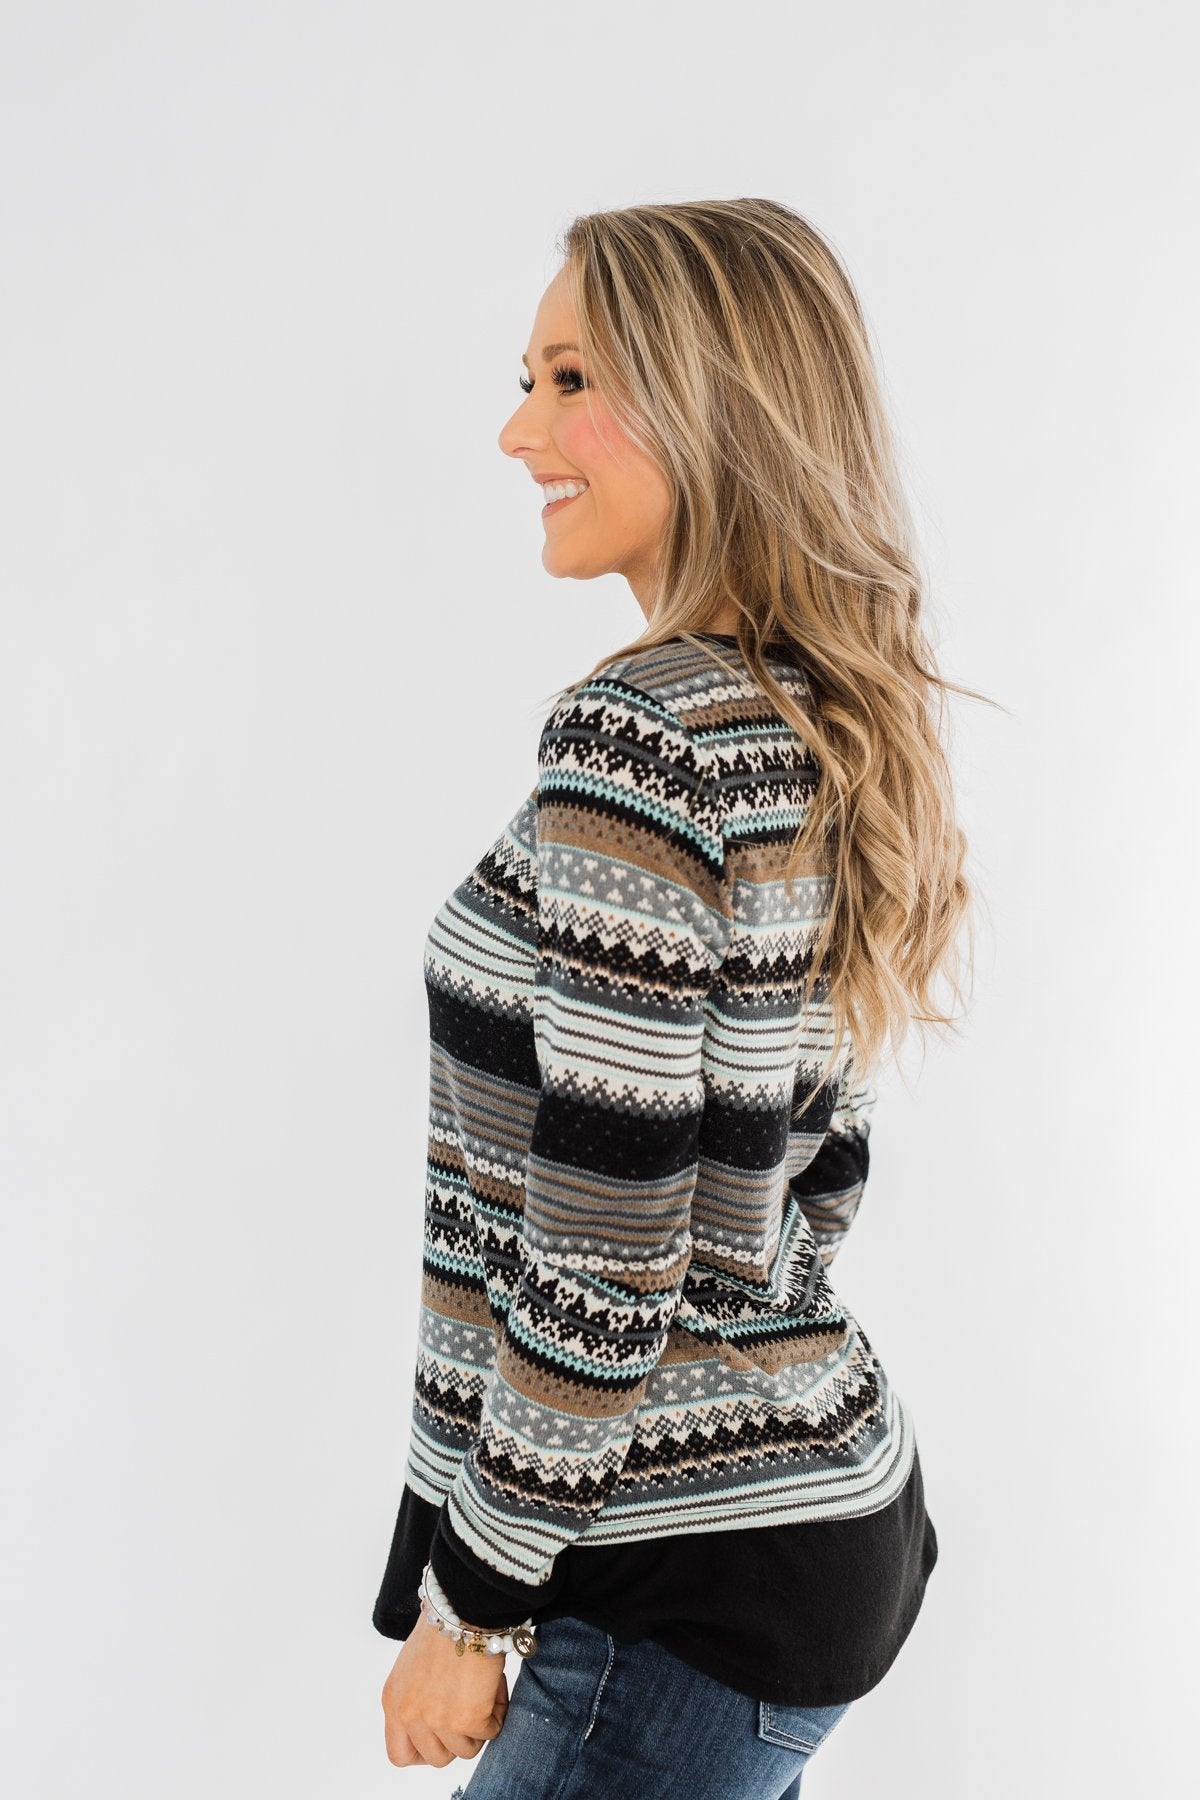 Simply Beautiful Pullover Top- Black & Mint